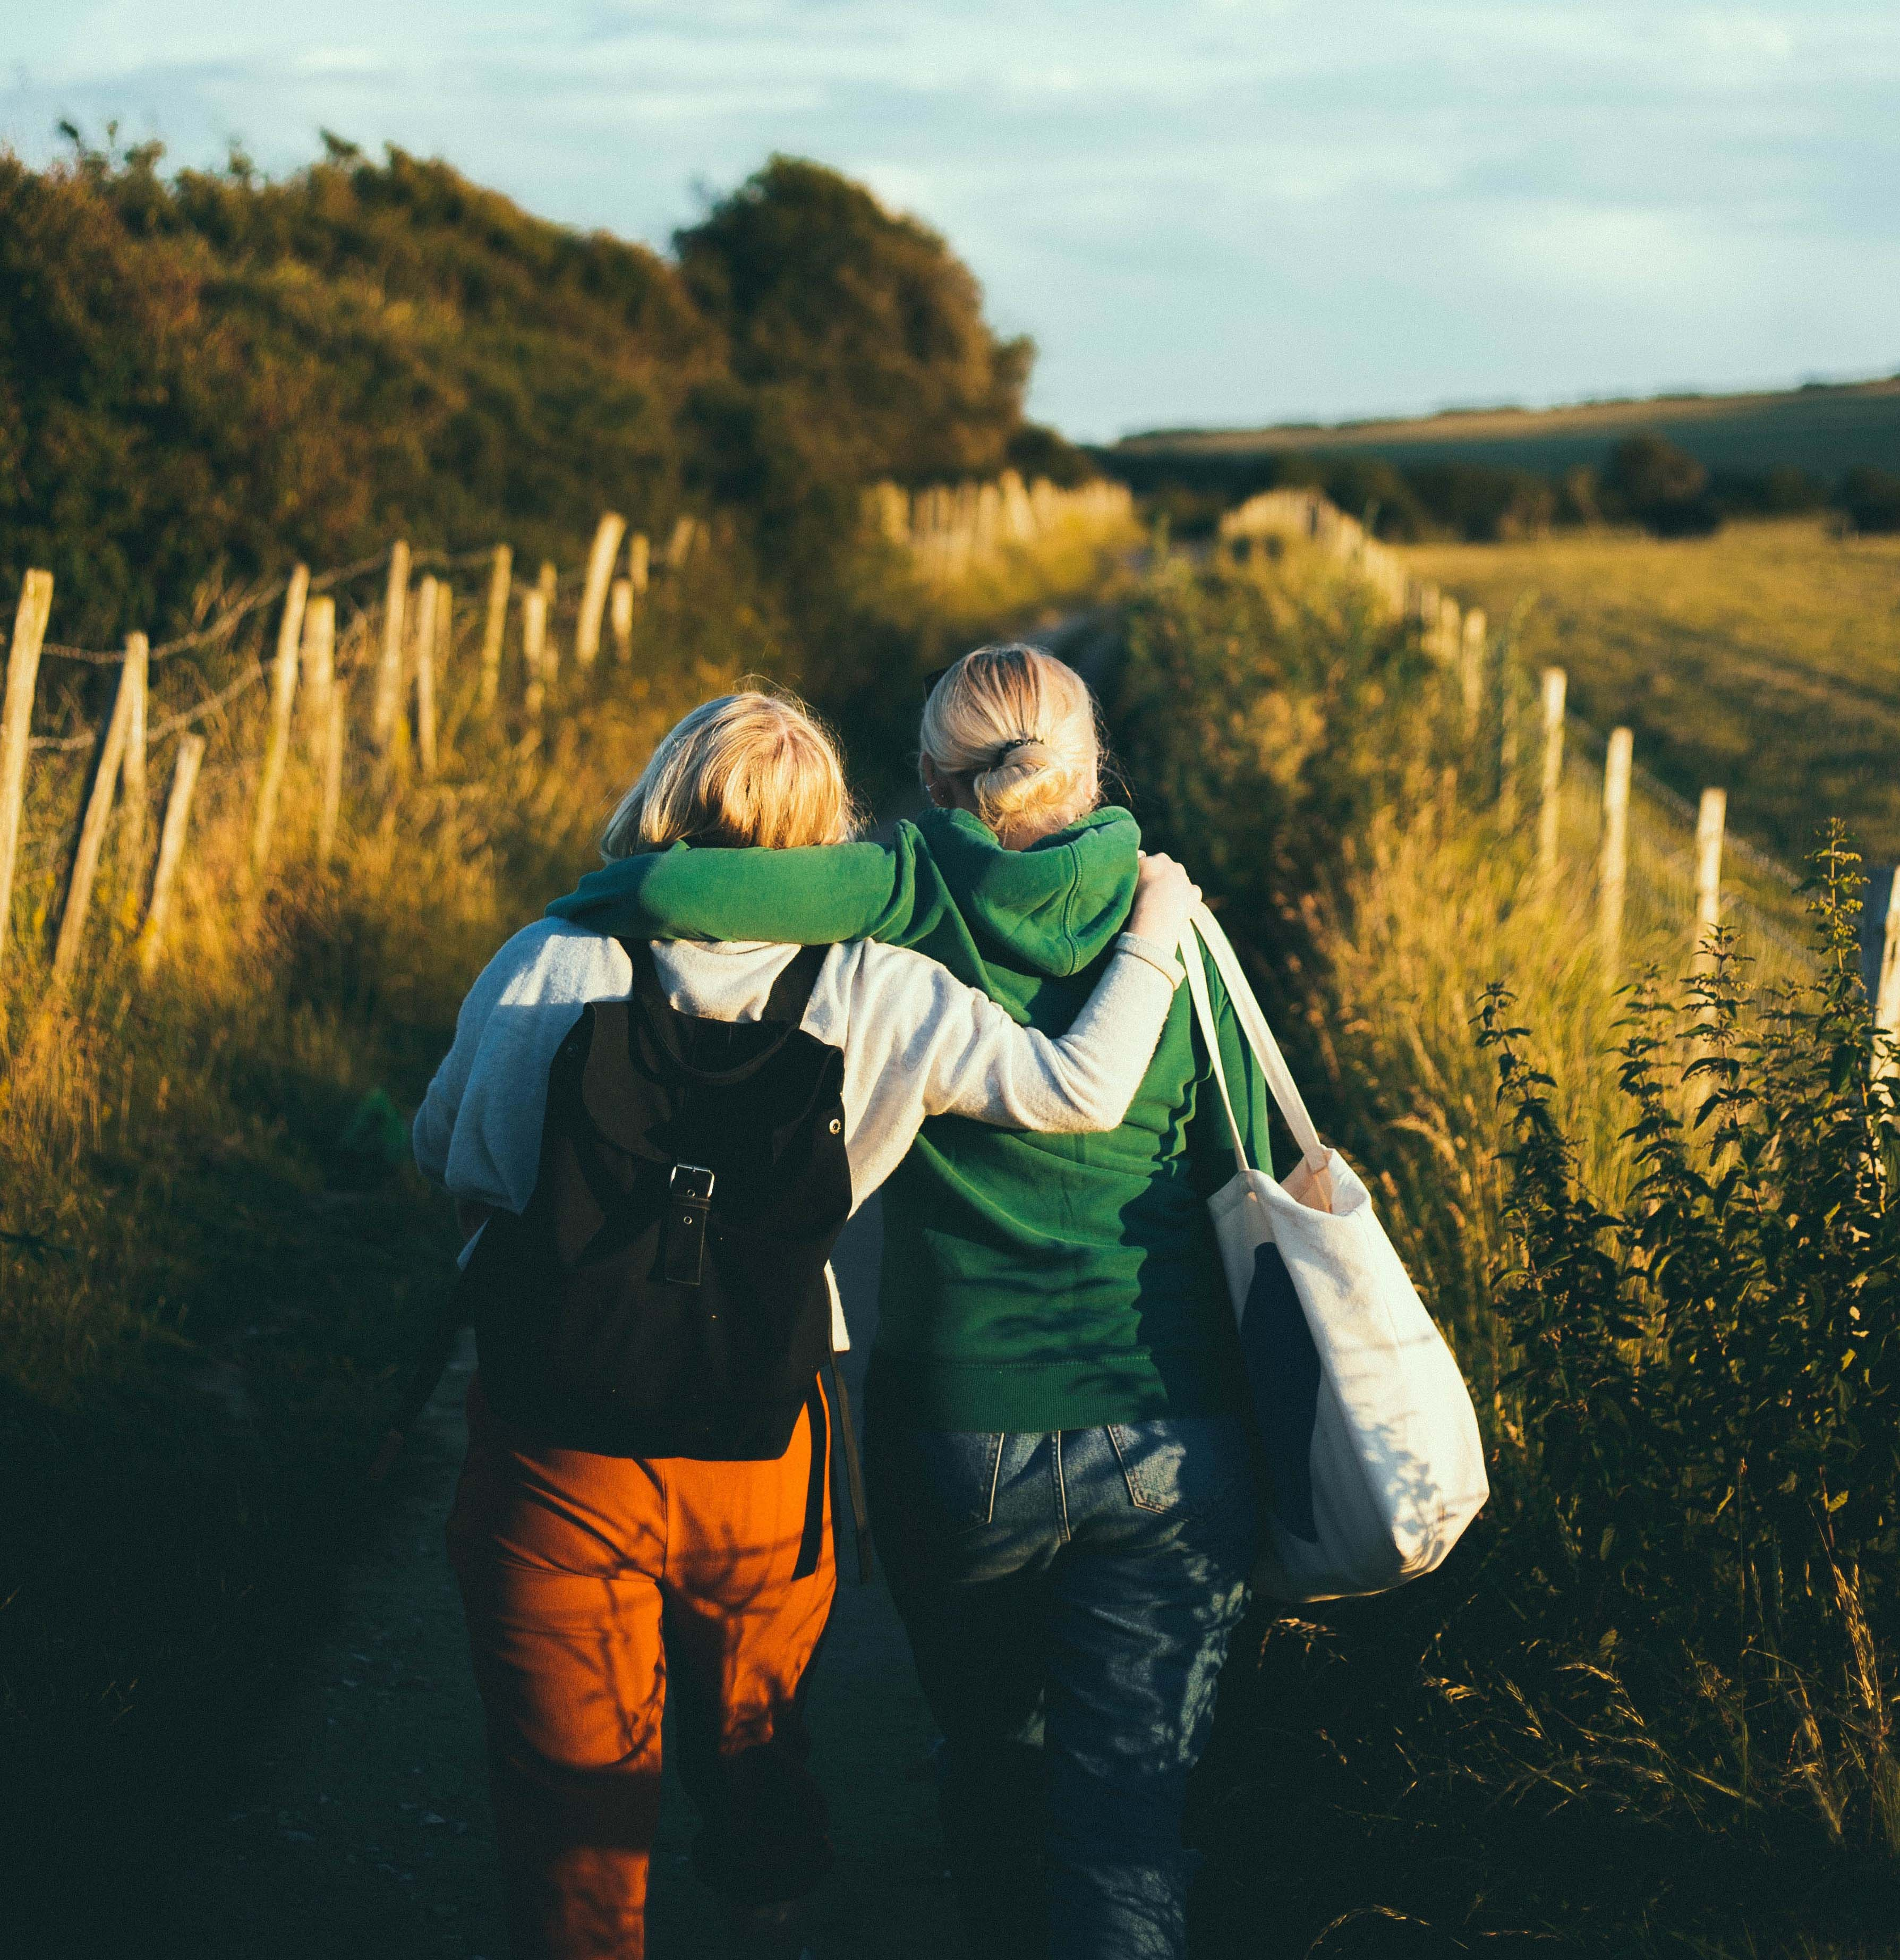 Two women with blonde hair walking down a path with their arms around each others shoulders. Their backs are to the camera. There is tall green grass on either side of a the path and an open, blue sky above them.